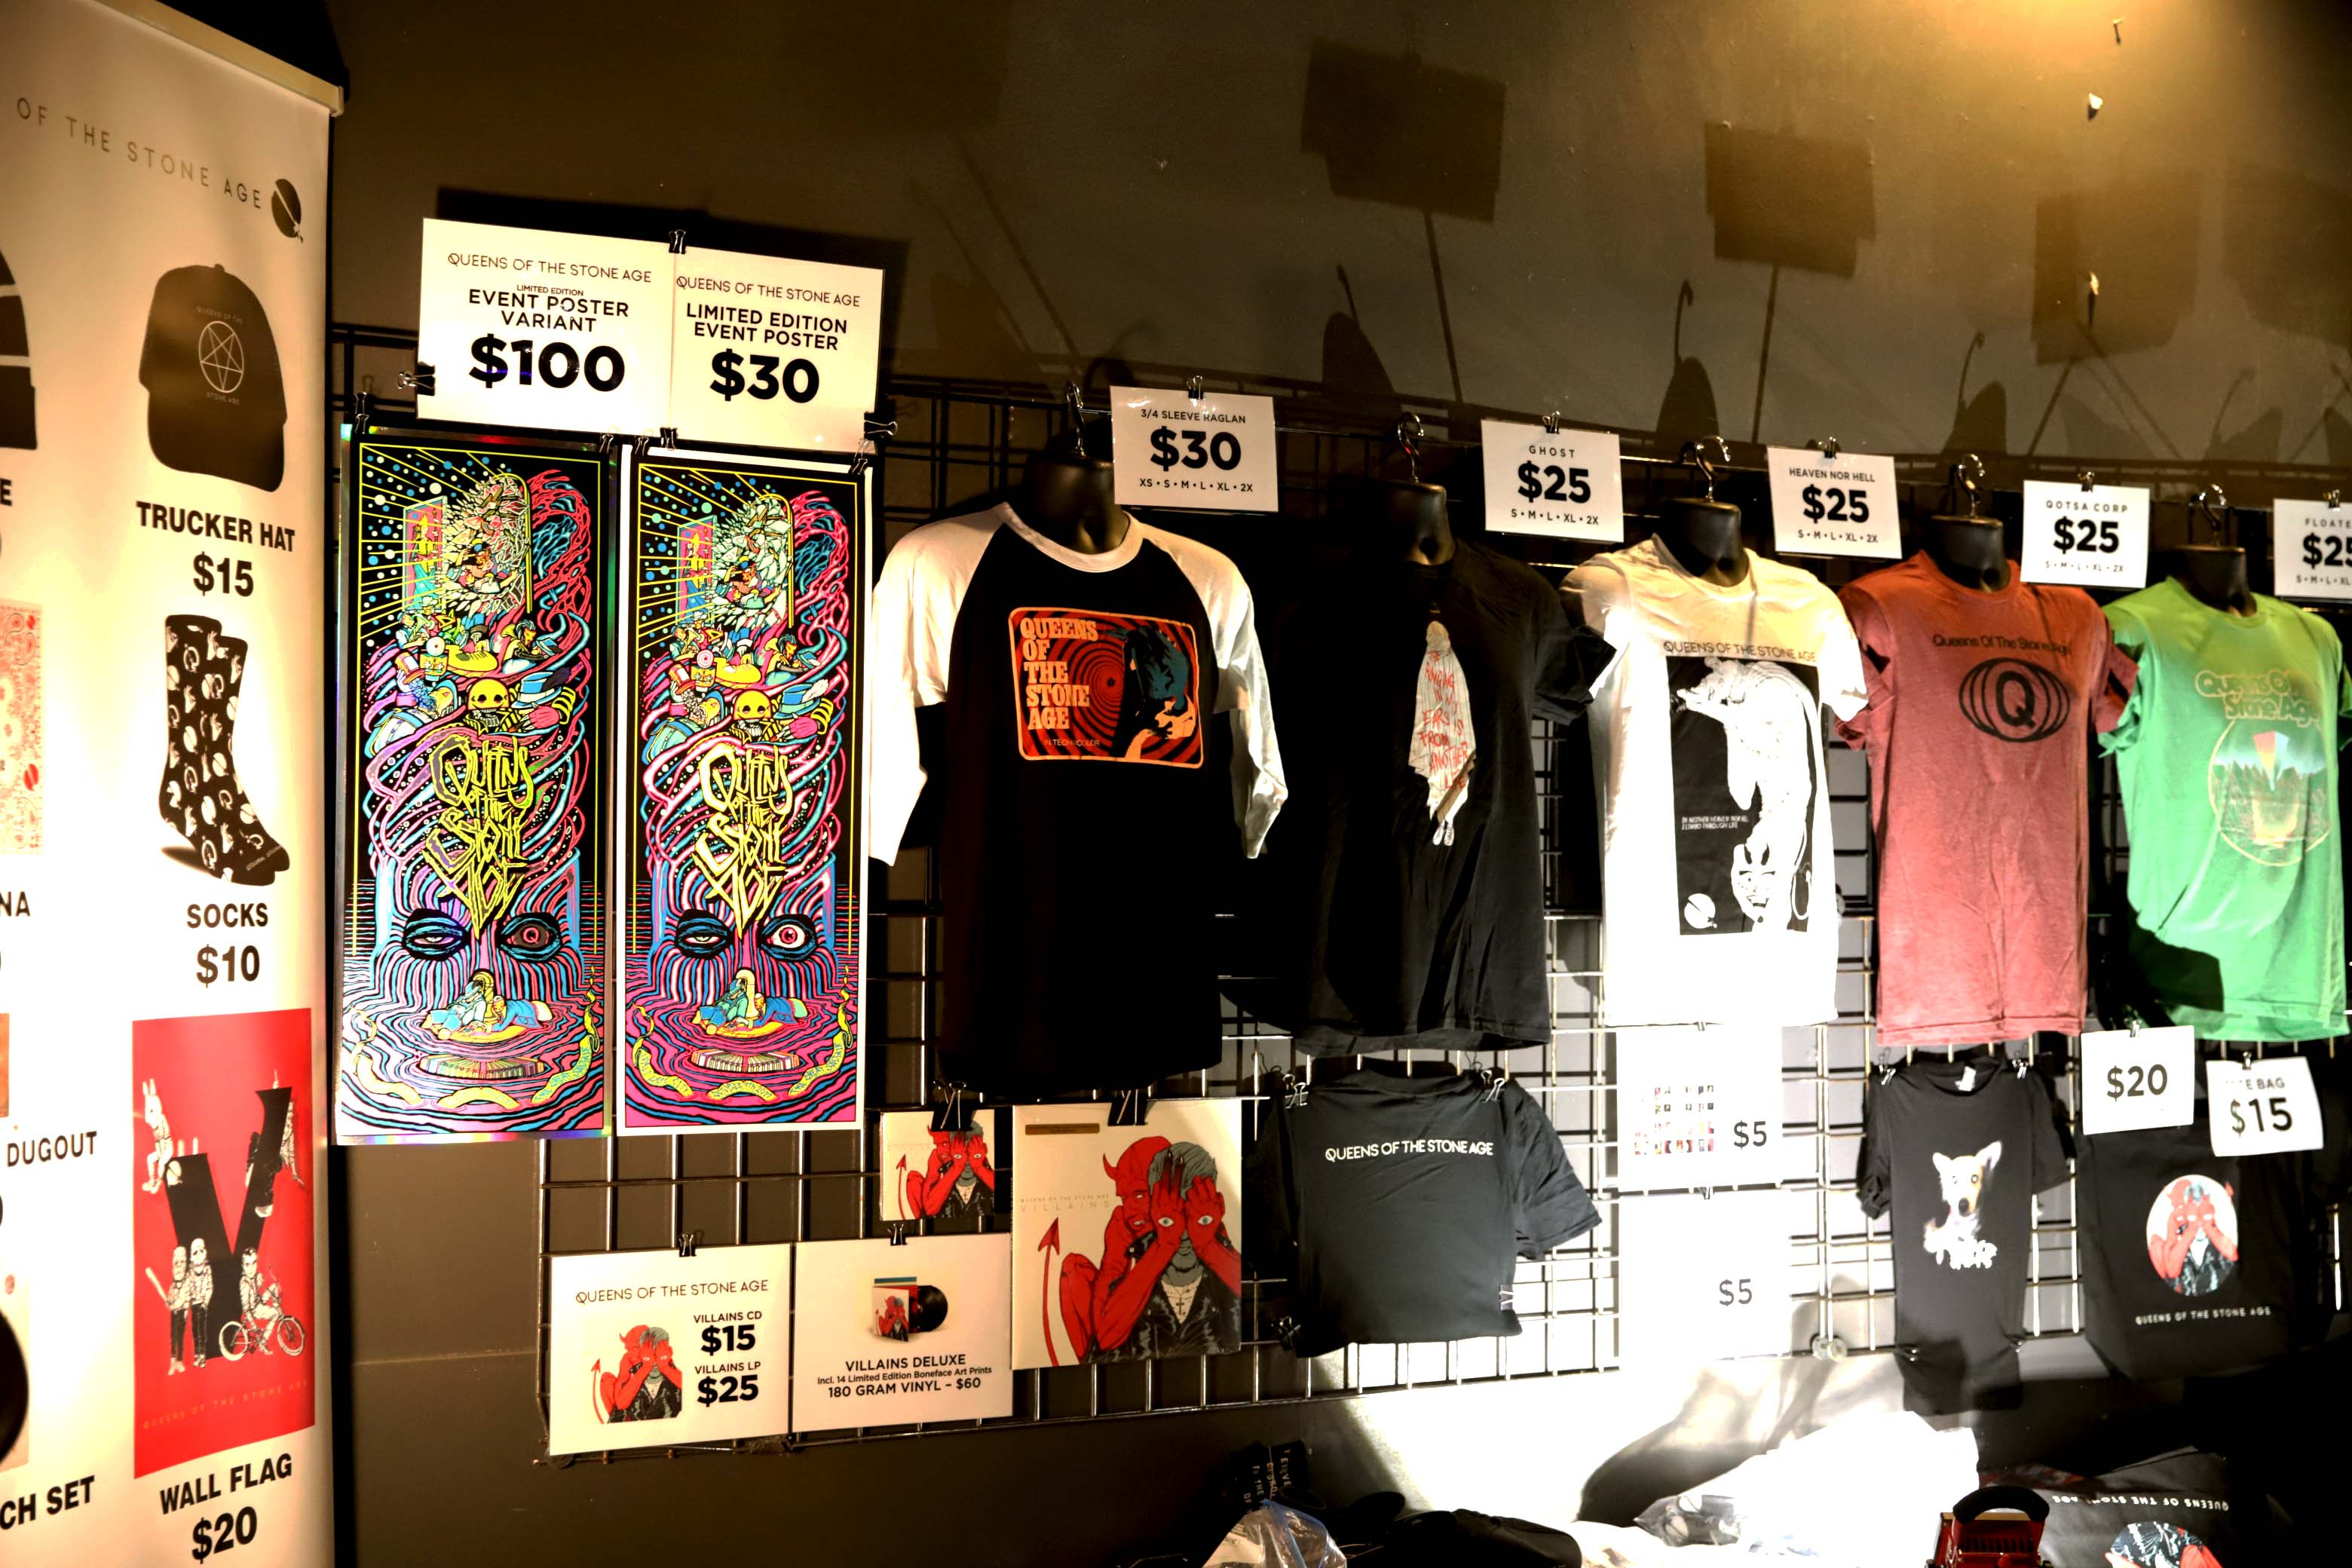 Merchandise, CDs, T-shirts and some pretty sweet and psychedelic-looking posters for sale before the show. Photo: Lmsorenson.net